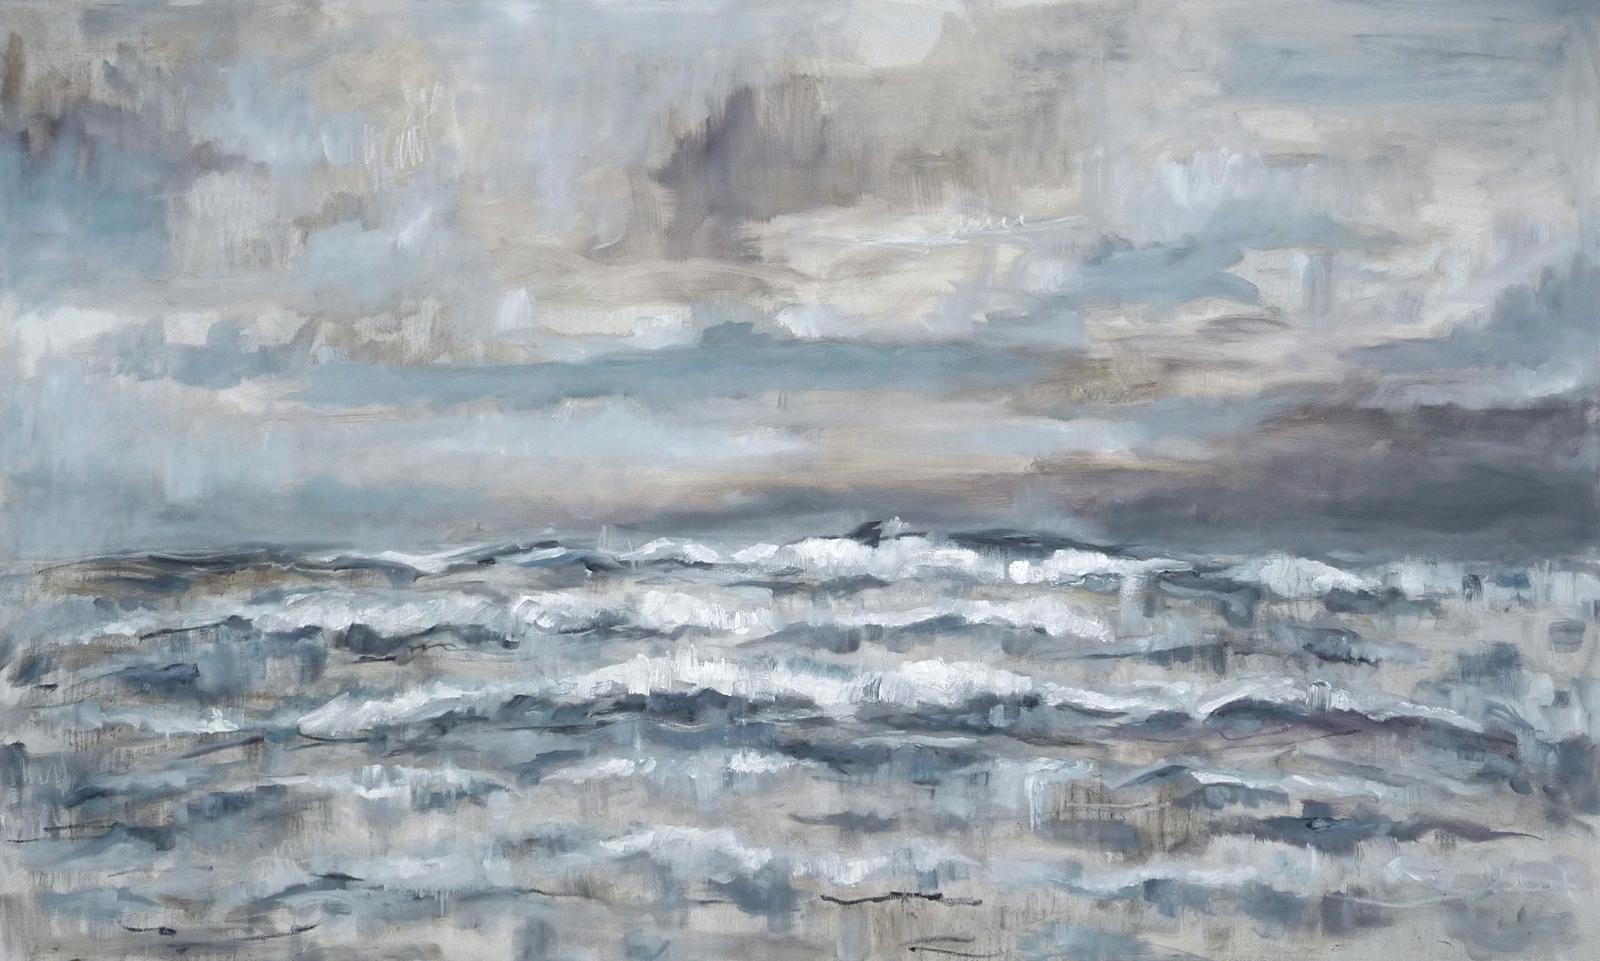 Seascape , 2017. Oil on canvas. 48x80 inches (121.9 x 203.2 cm)